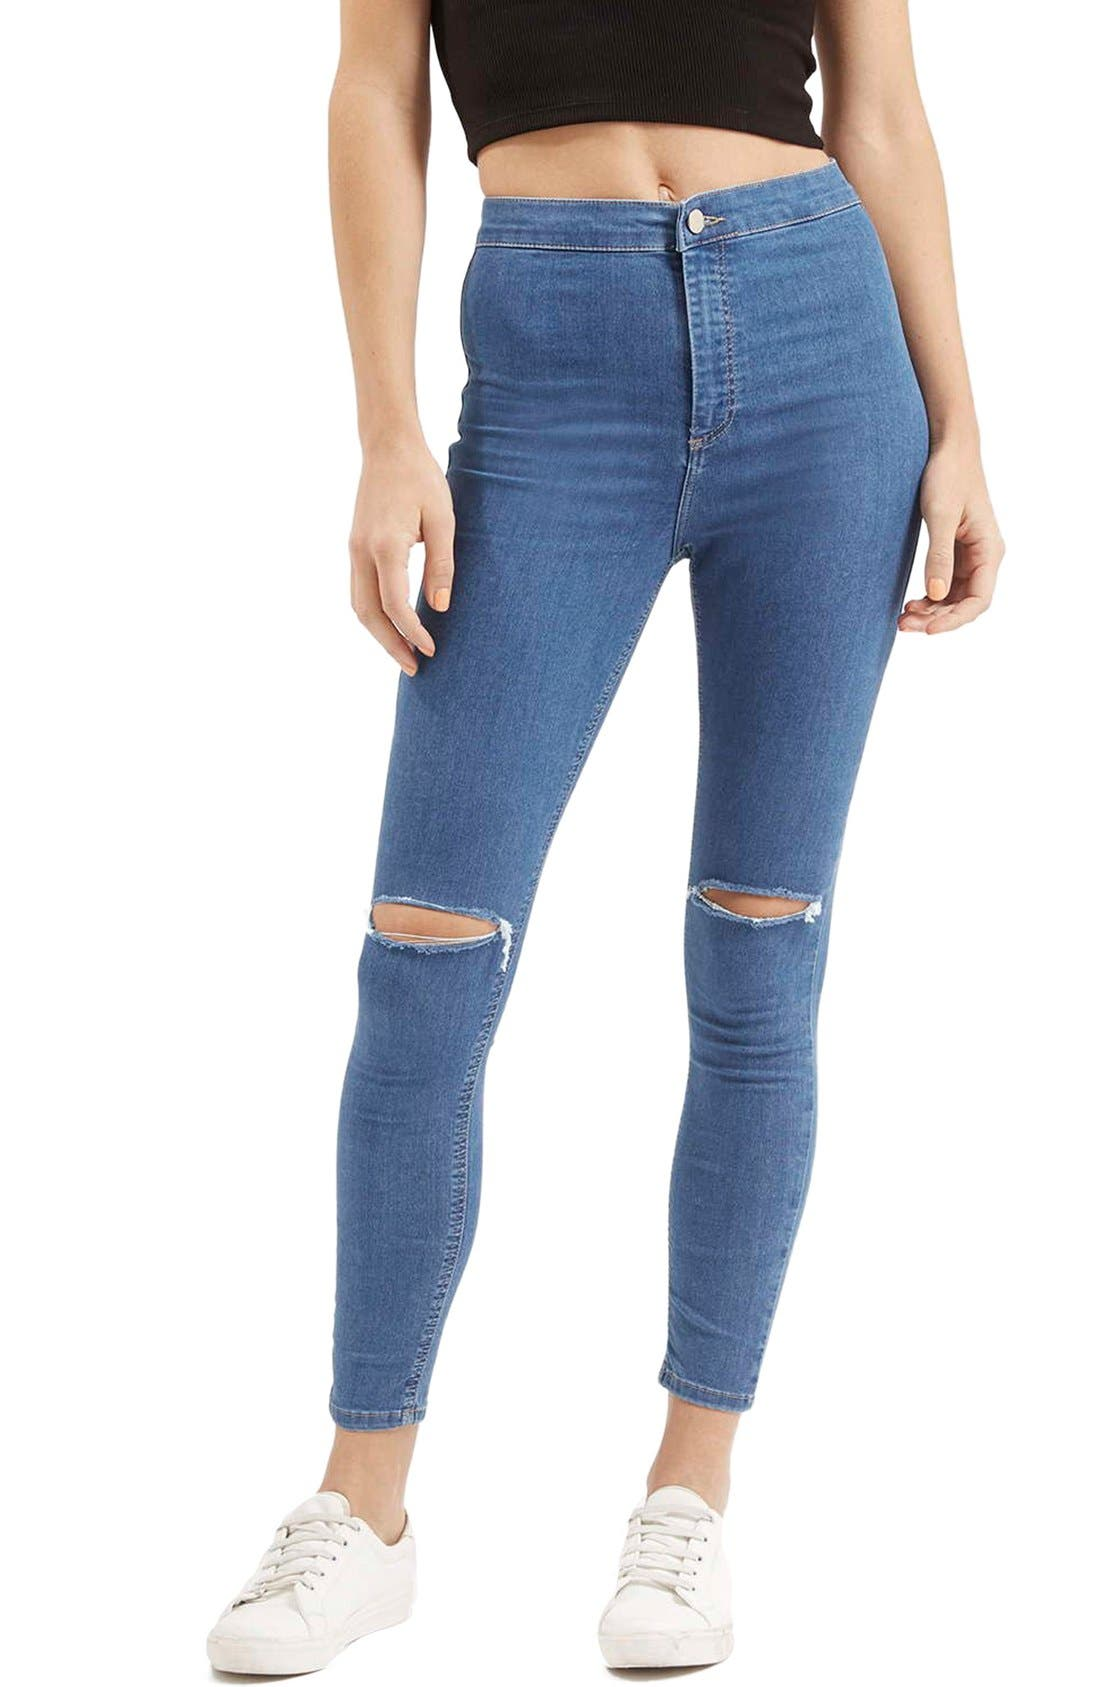 Alternate Image 1 Selected - Topshop 'Joni' Ripped High Rise Skinny Jeans (Petite)